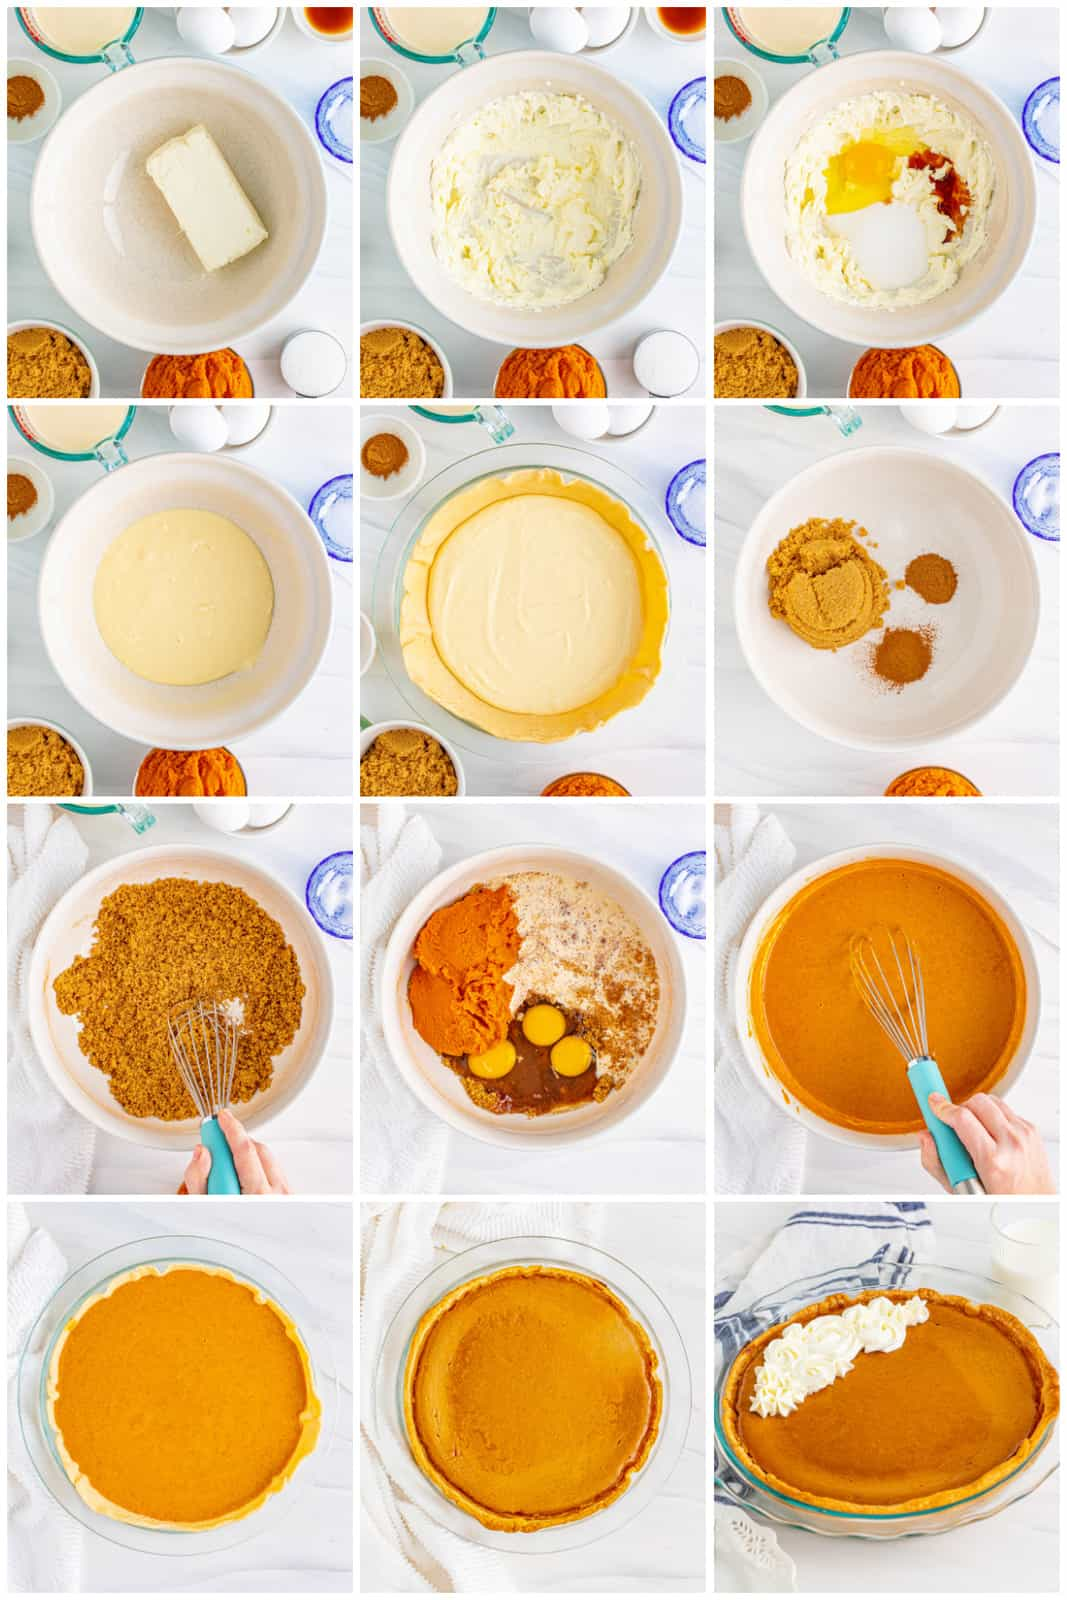 Step by step photos on how to make a Pumpkin Cheesecake Pie.